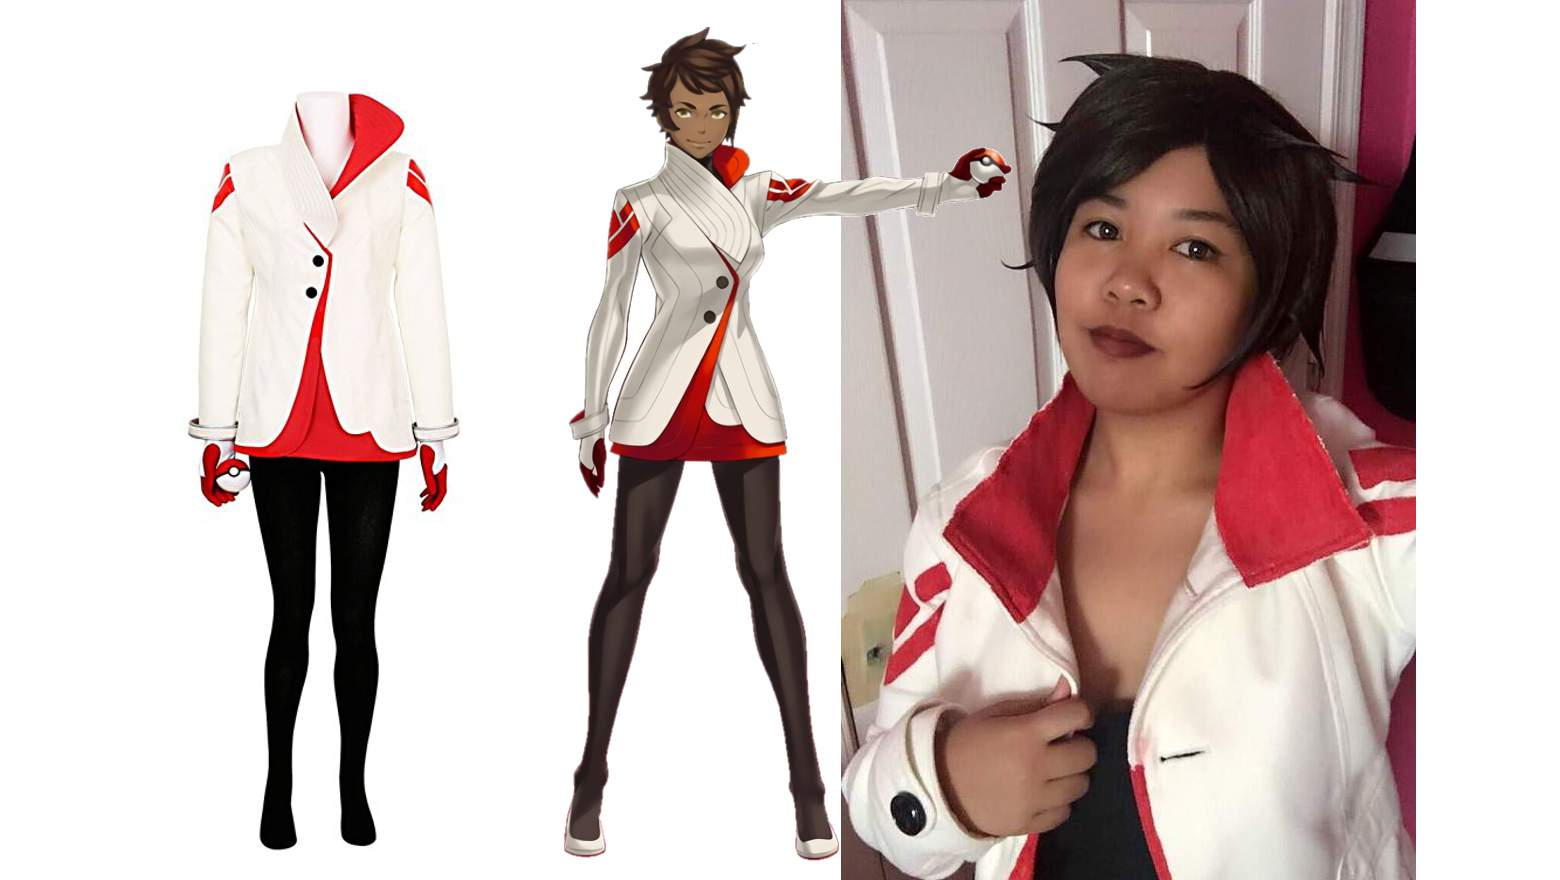 http://heavy.com/games/2016/08/top-best-pokemon-go-cosplay-trainer-costumes-cosplay-outfits-halloween-ideas-designs/